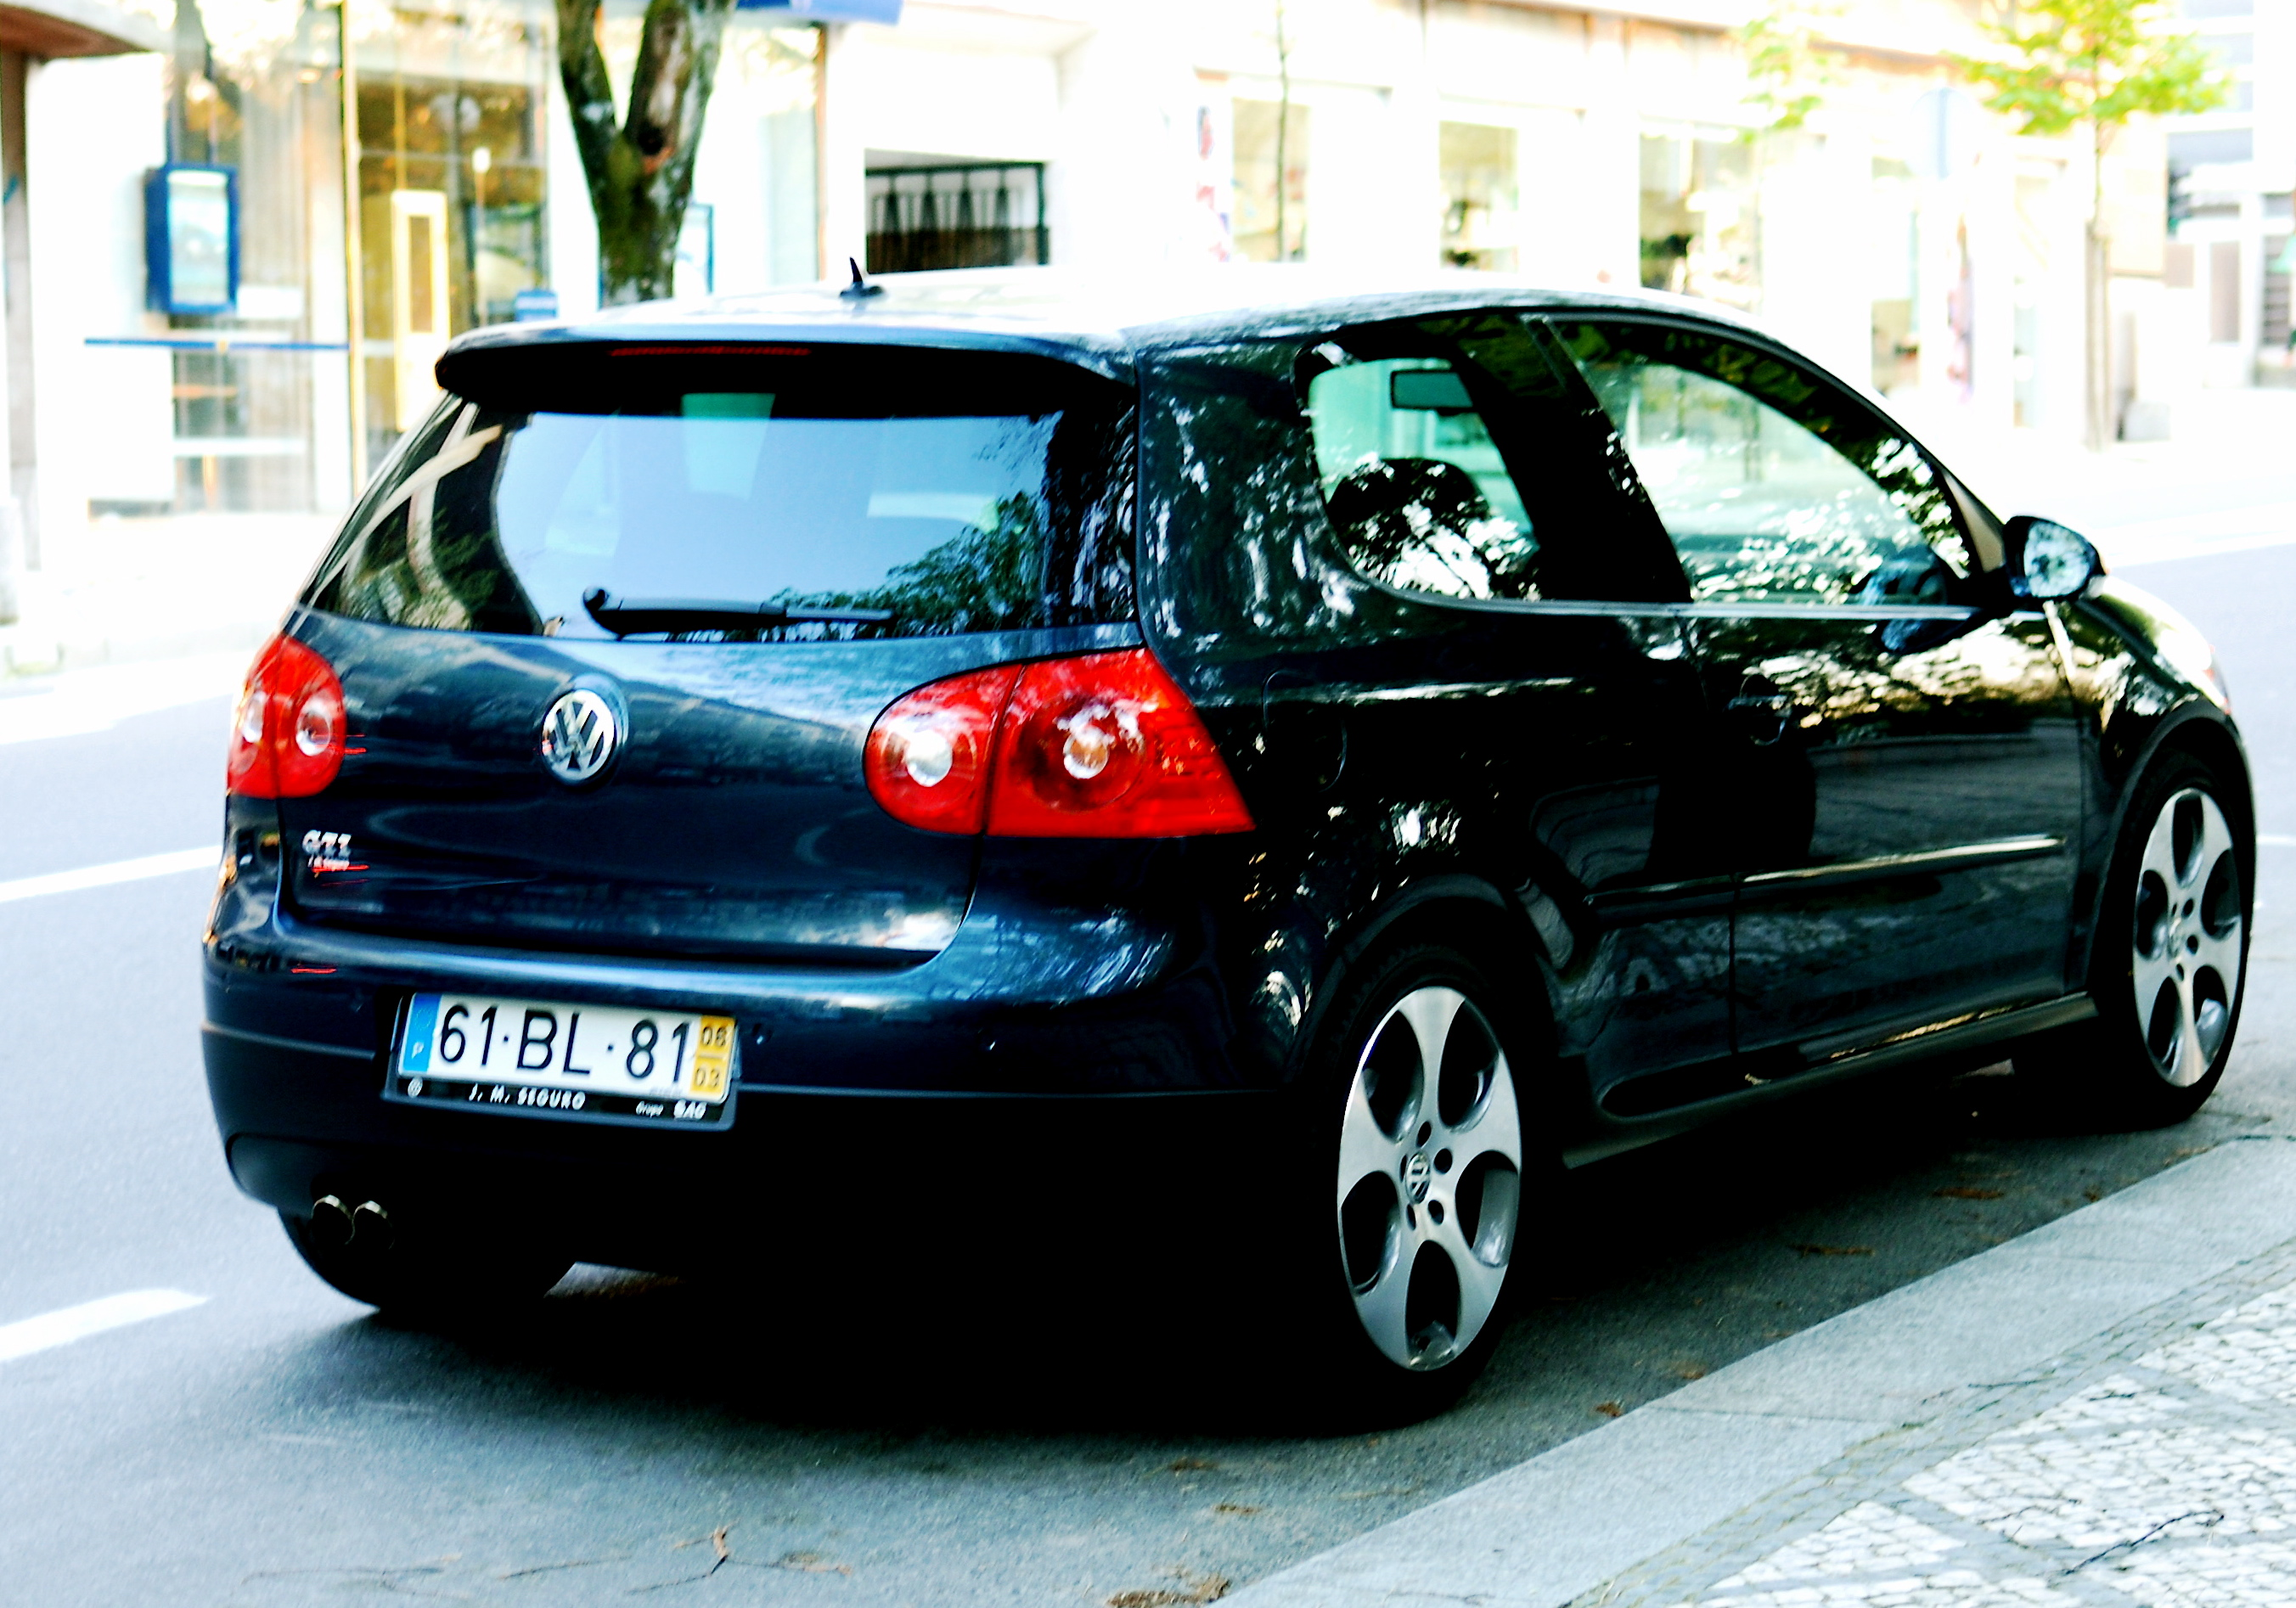 file vw golf gti v 132091099 jpg wikimedia commons. Black Bedroom Furniture Sets. Home Design Ideas